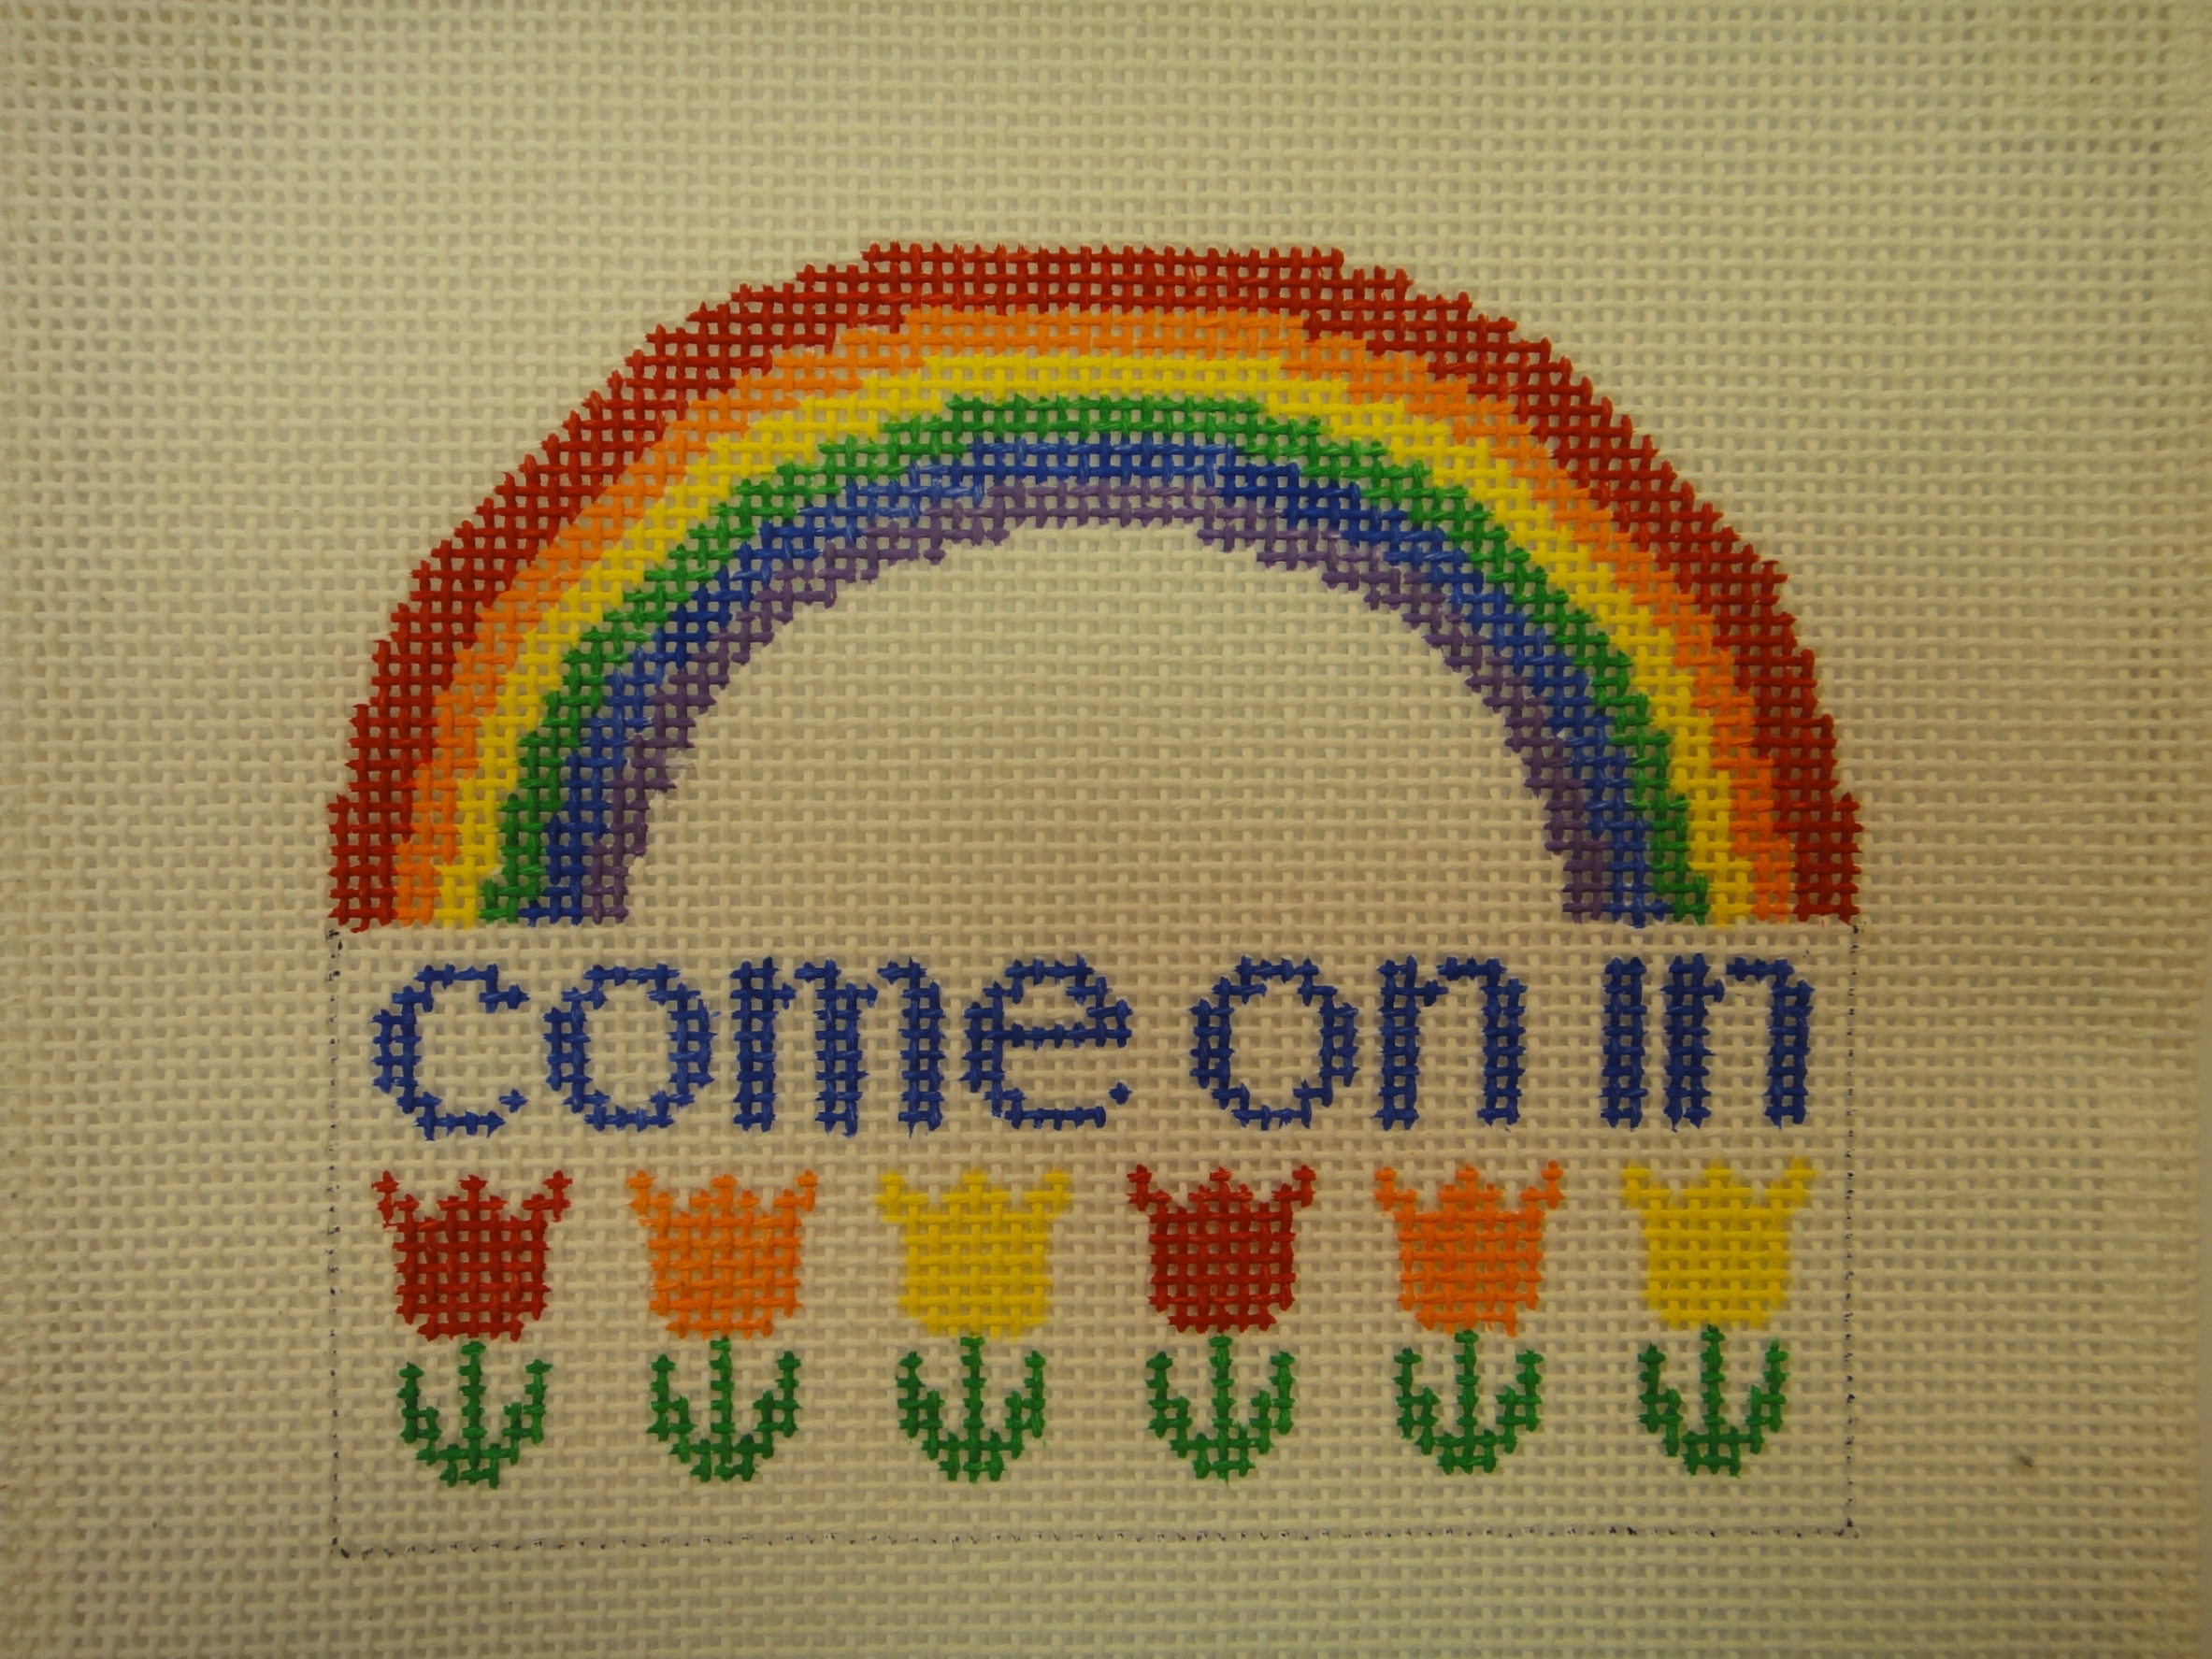 S39 Come On In/Rainbow (5.5x5)